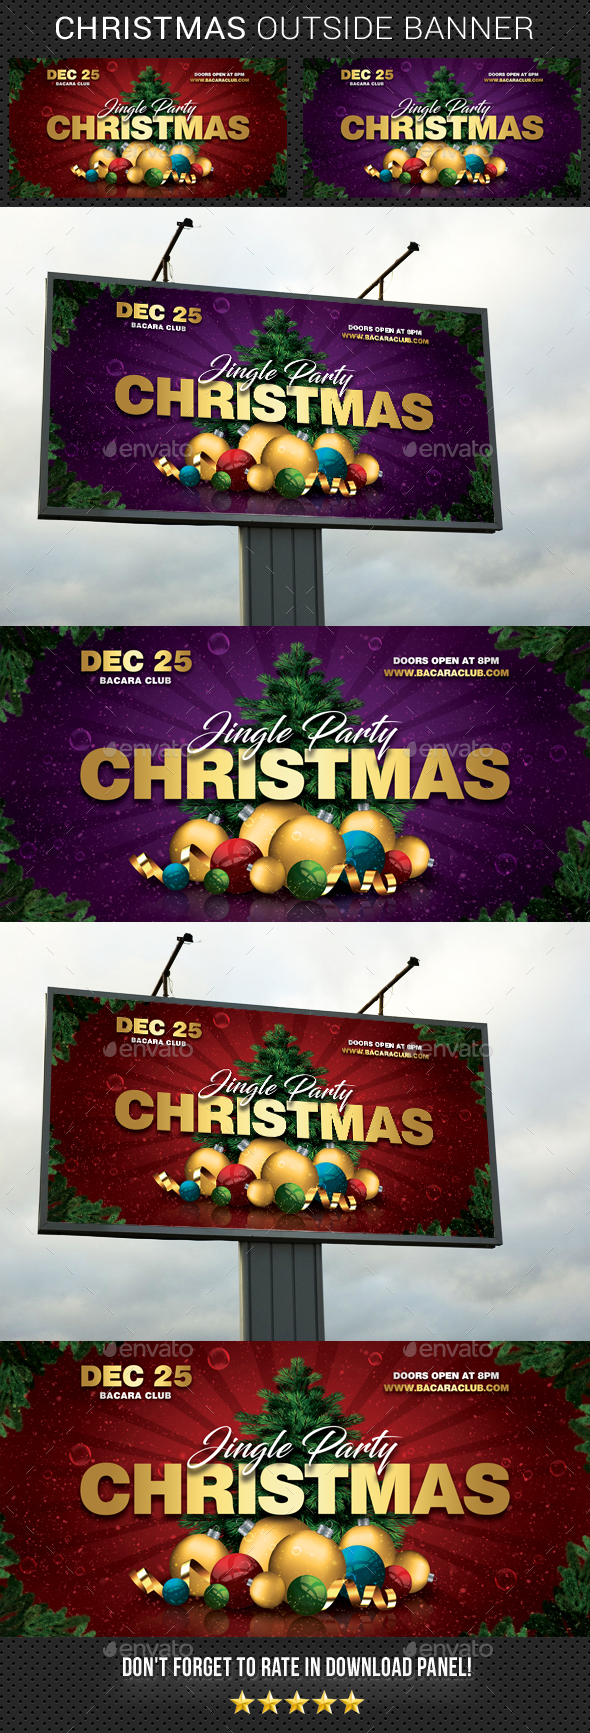 Christmas Outdoor Banner - Signage Print Templates